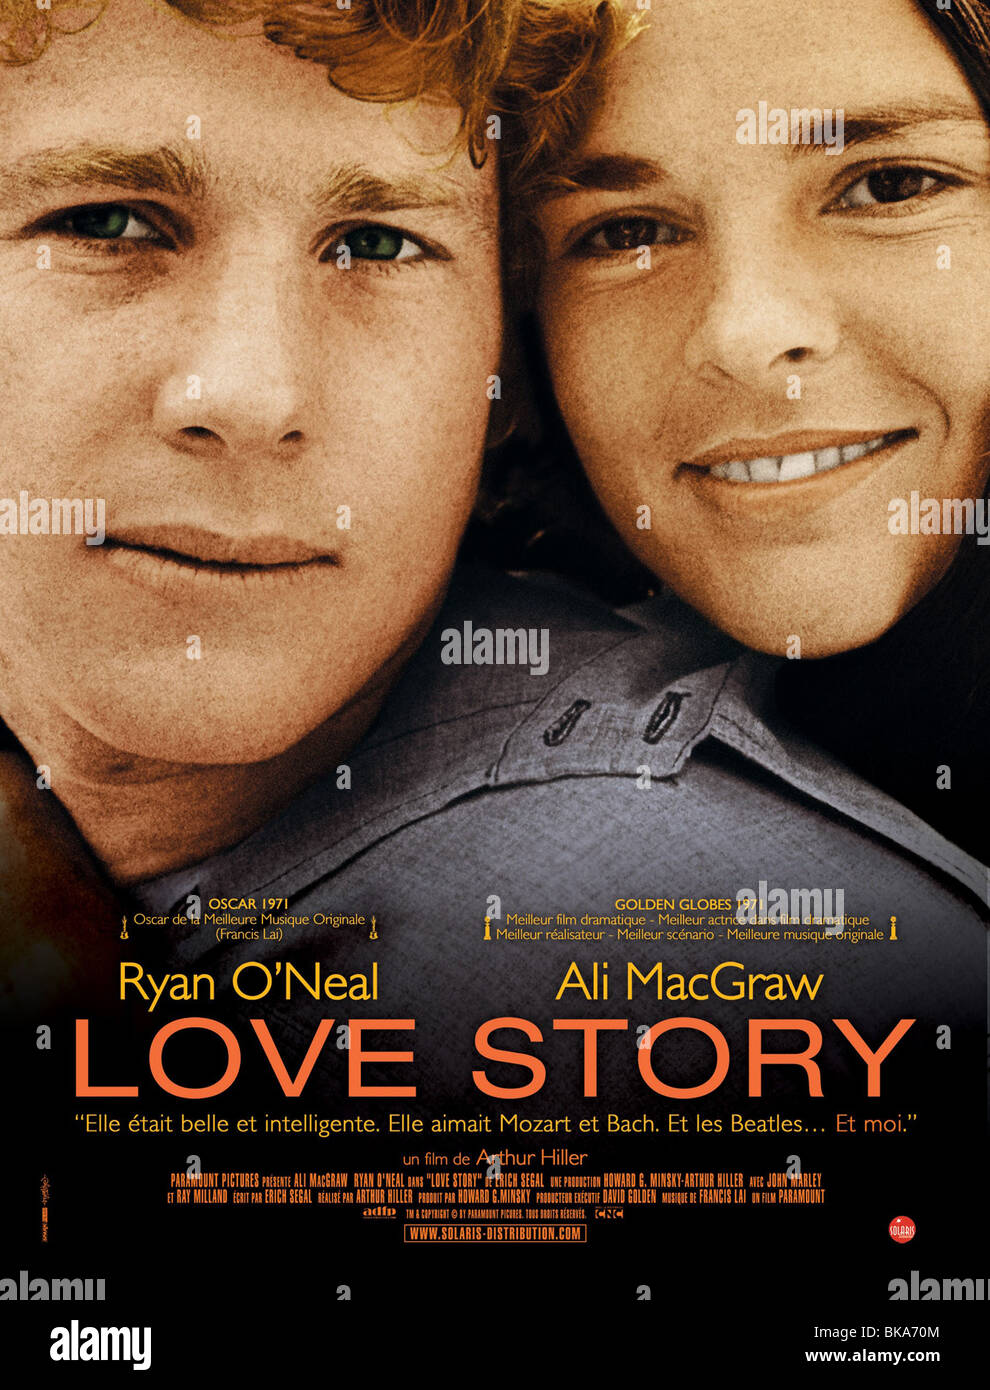 Love Story Magazine 1921 Pulp Comic Books 1939 Or Before: Love Story Year : 1970 Director : Arthur Hiller Ryan O